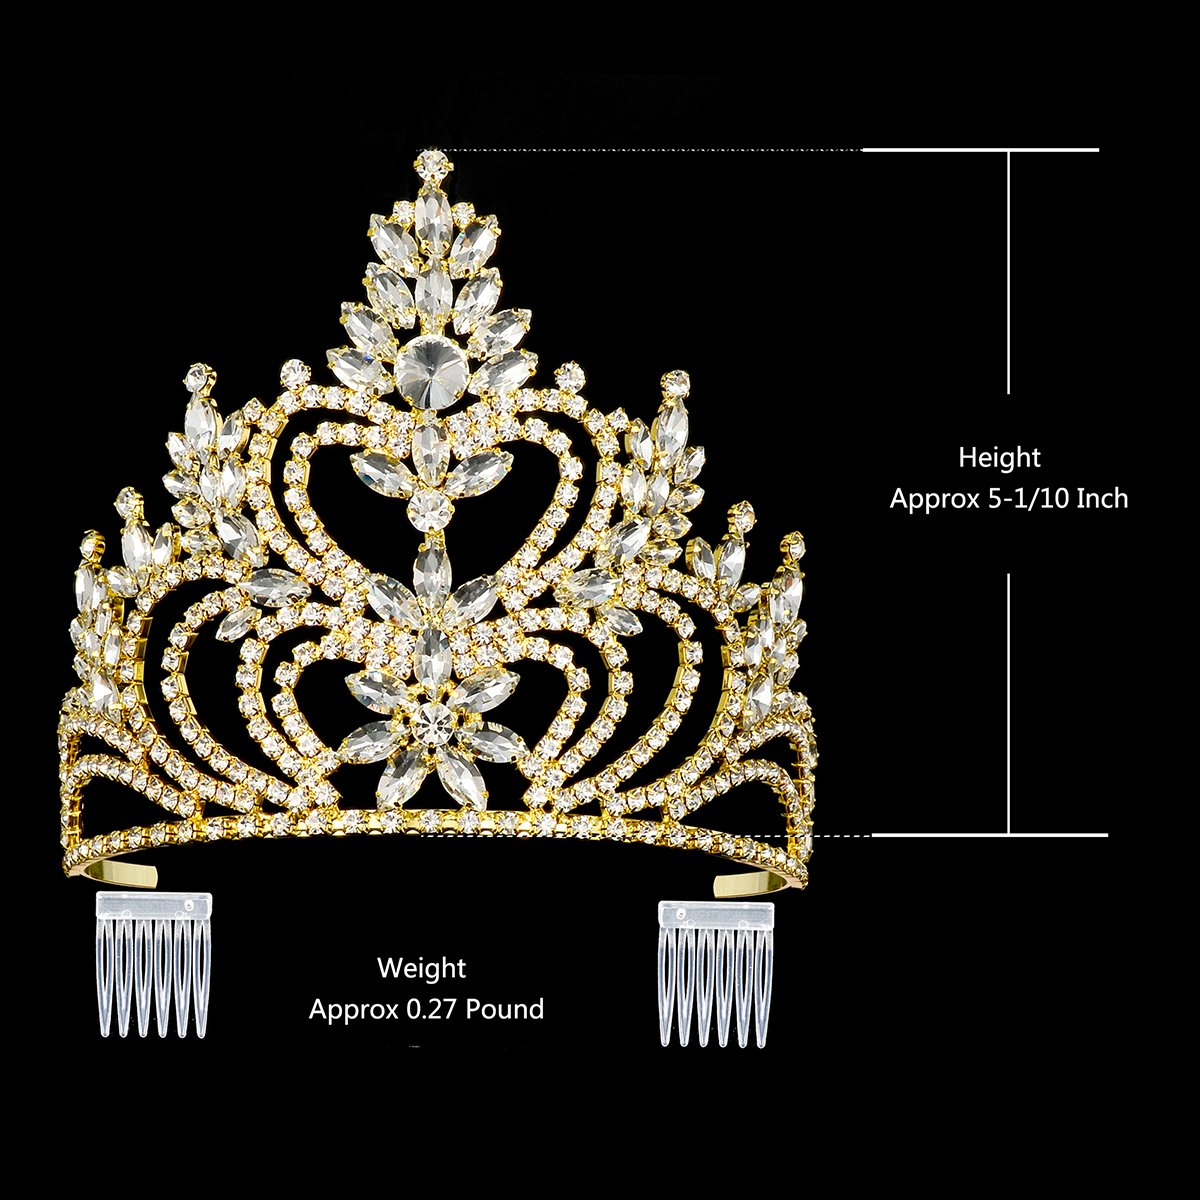 DcZeRong 5'' Tall Large Tiara Adult Women Birthday Pageant Prom Queen Gold Crystal Rhinestone Crown by DcZeRong (Image #2)